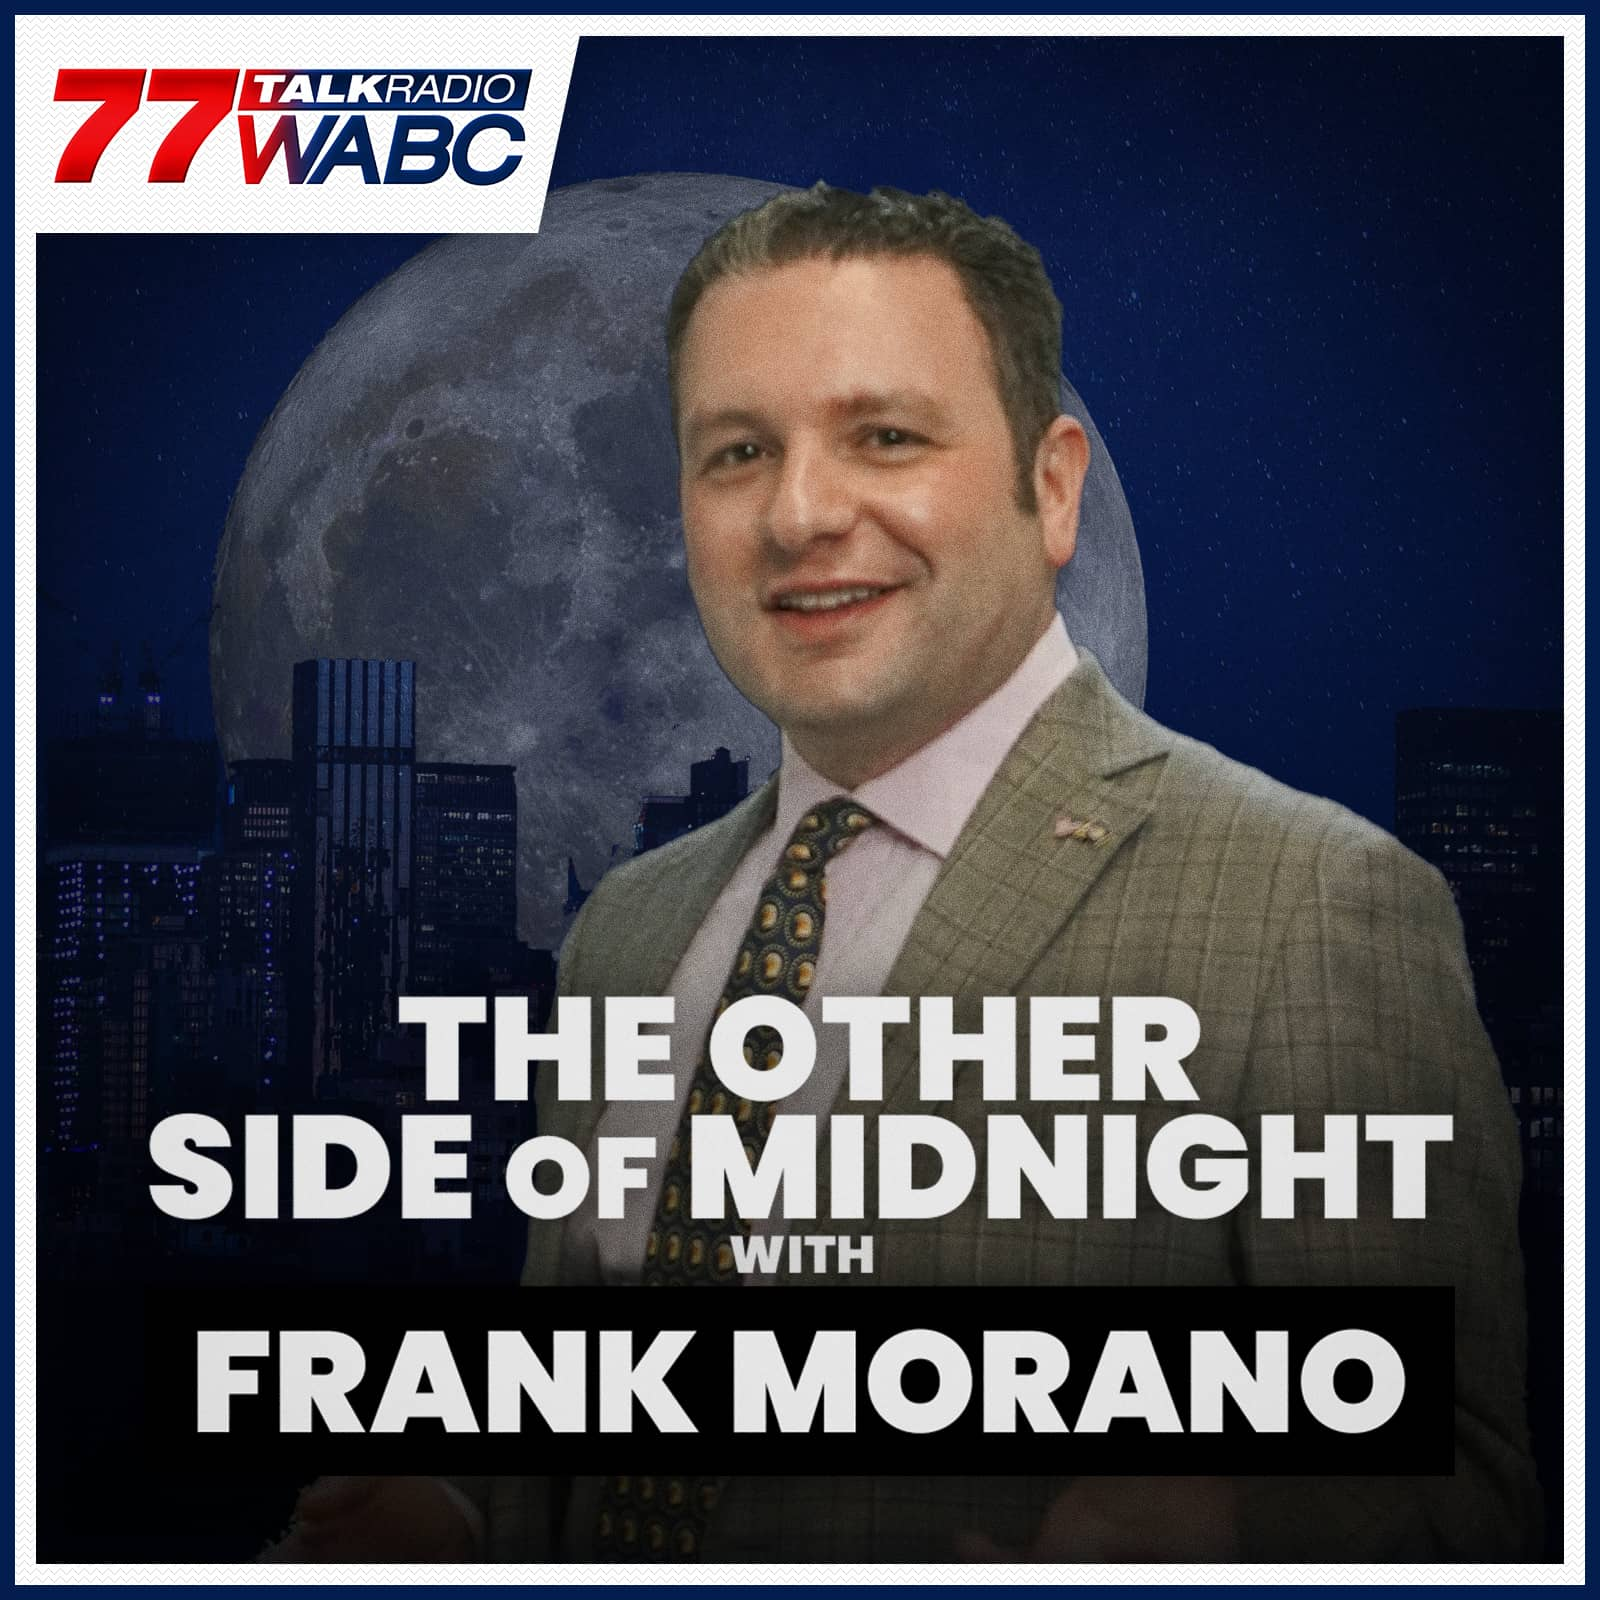 The Other Side of Midnight with Frank Morano